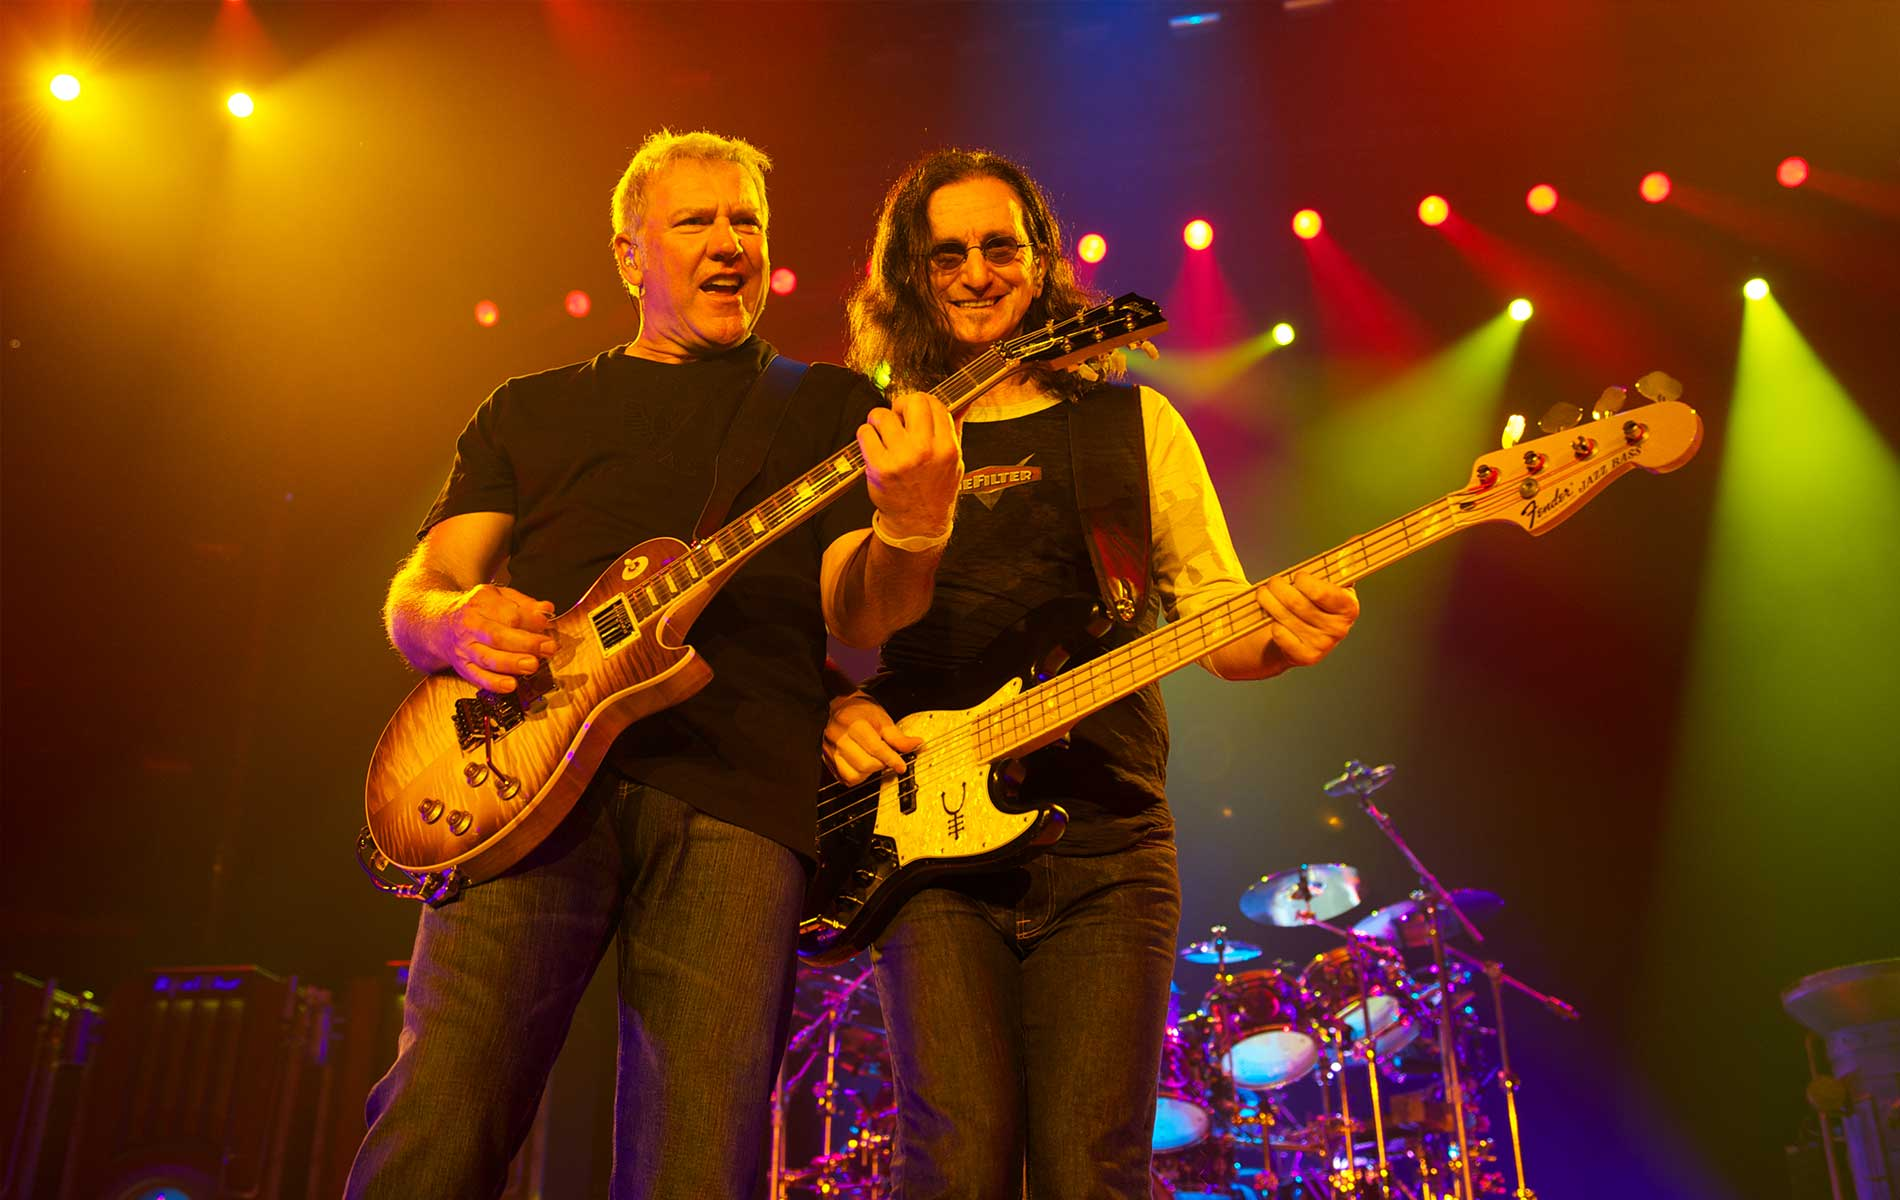 vie-magazine-hero-rush, music, guitar